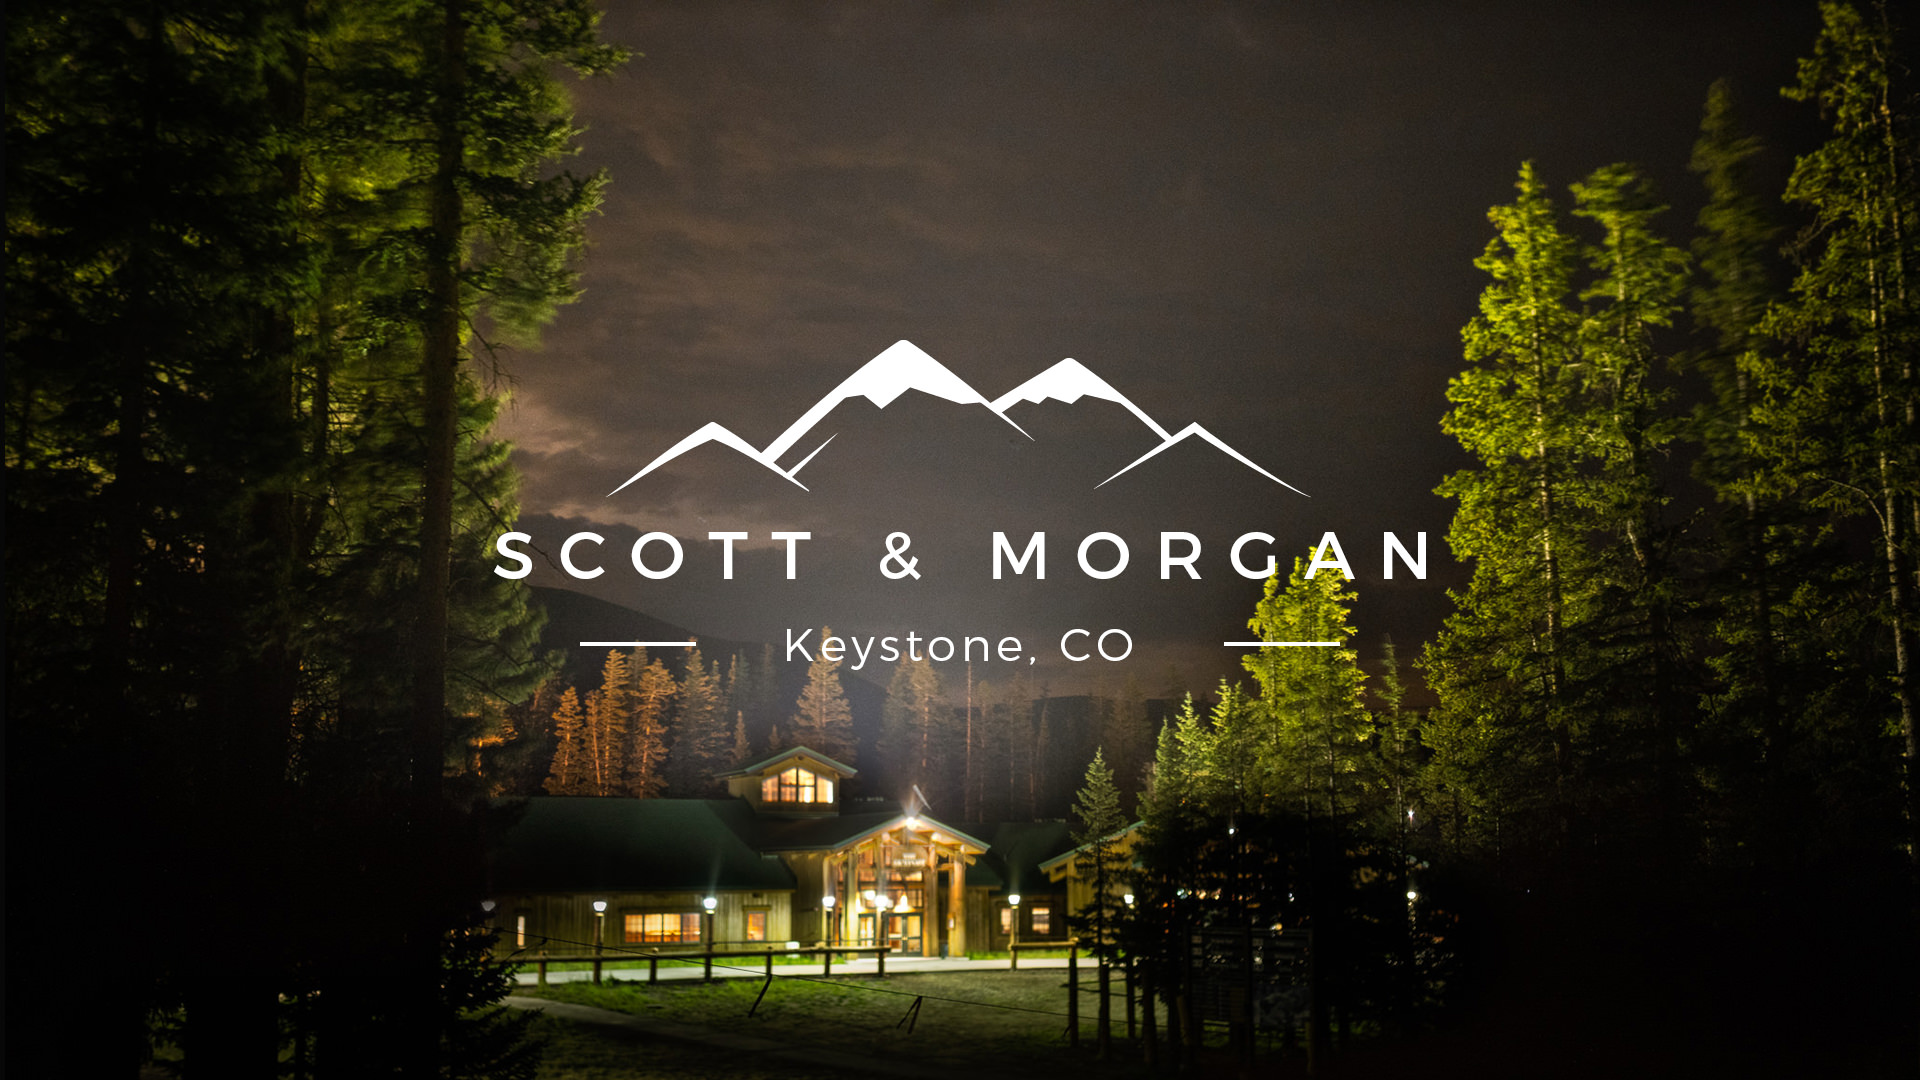 Morgan + Scott | Keystone, Colorado | Keystone Timber Ridge